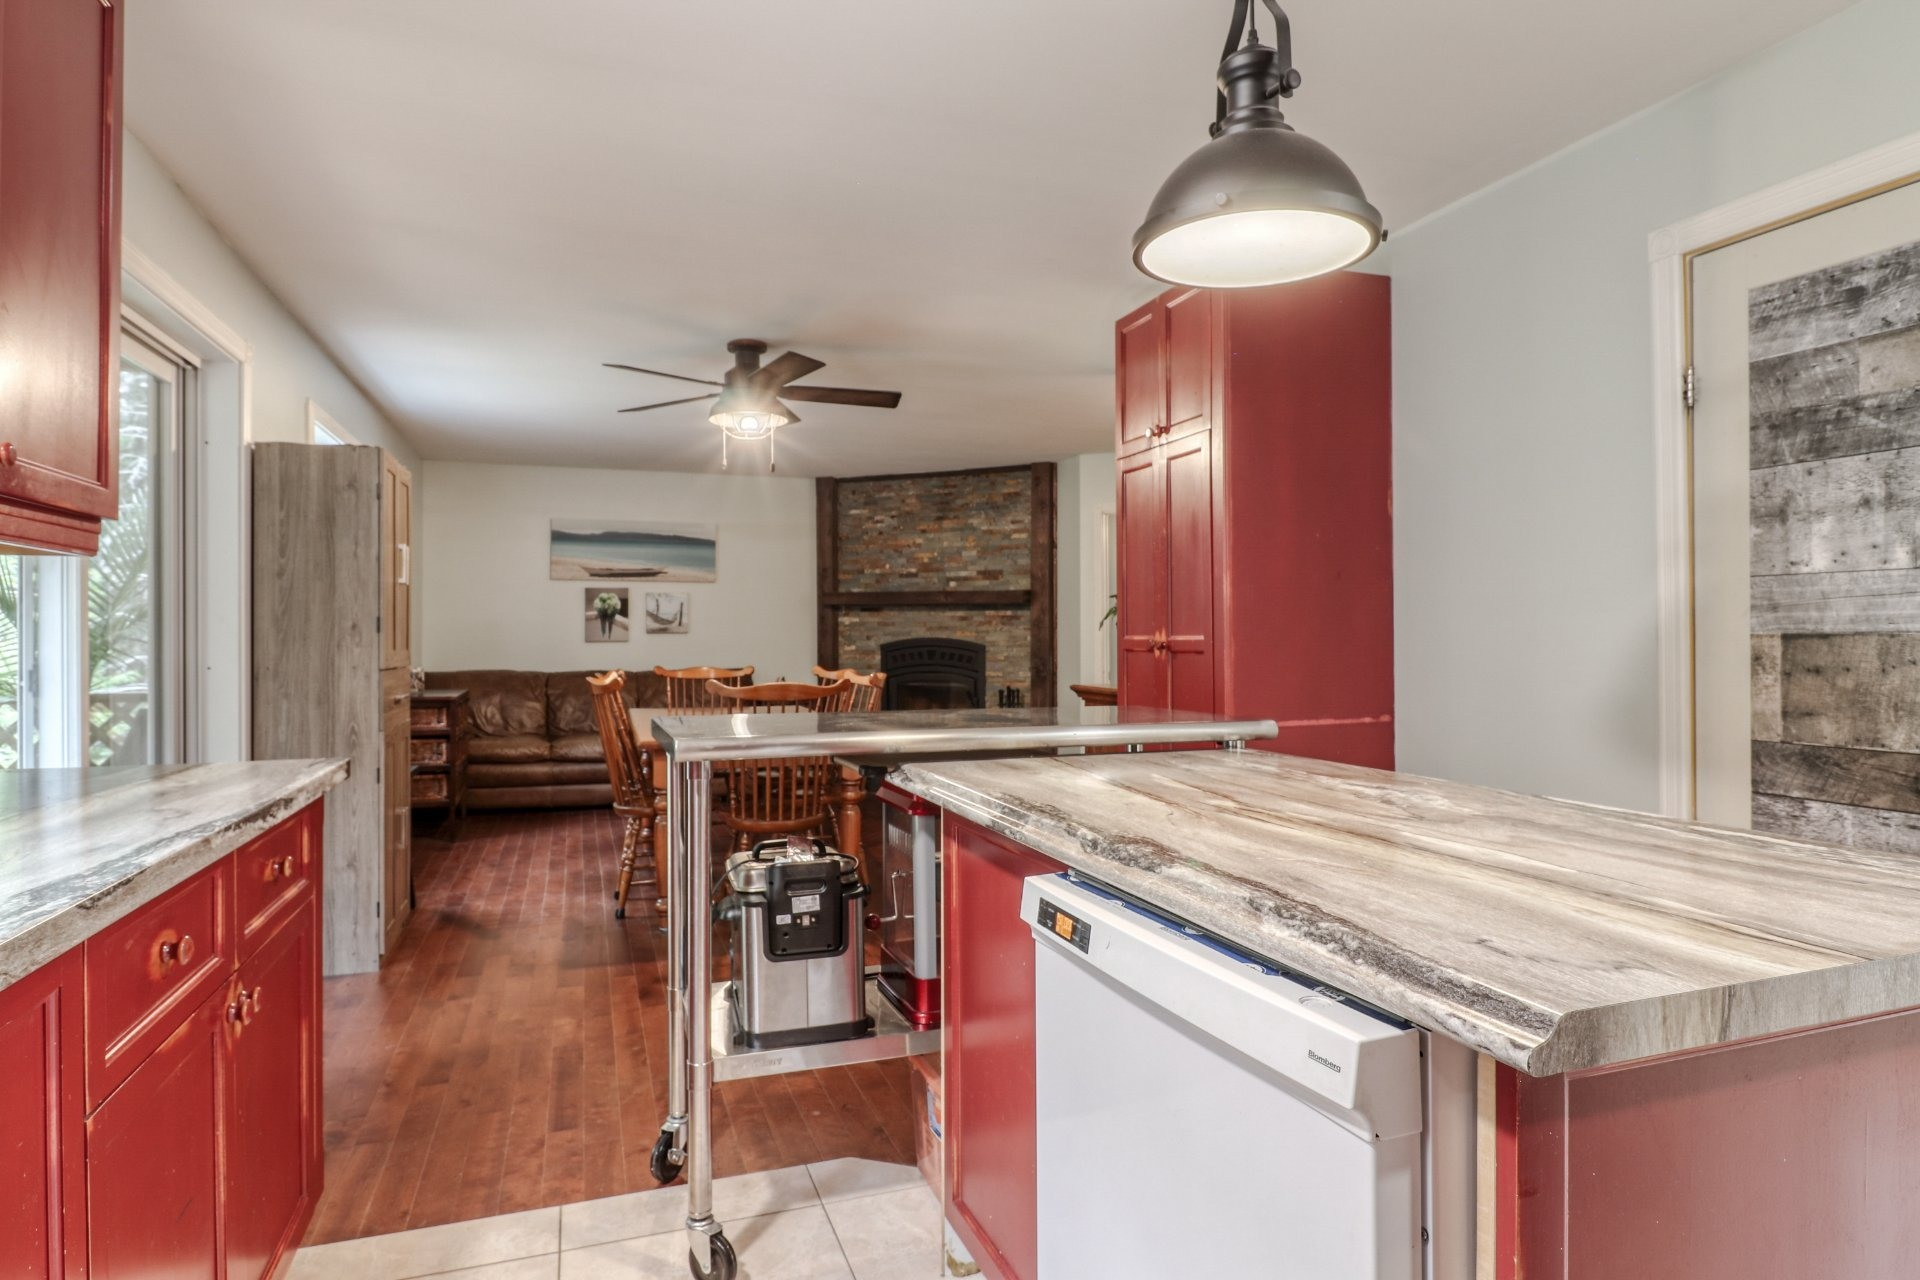 image 5 - House For sale Rawdon - 9 rooms